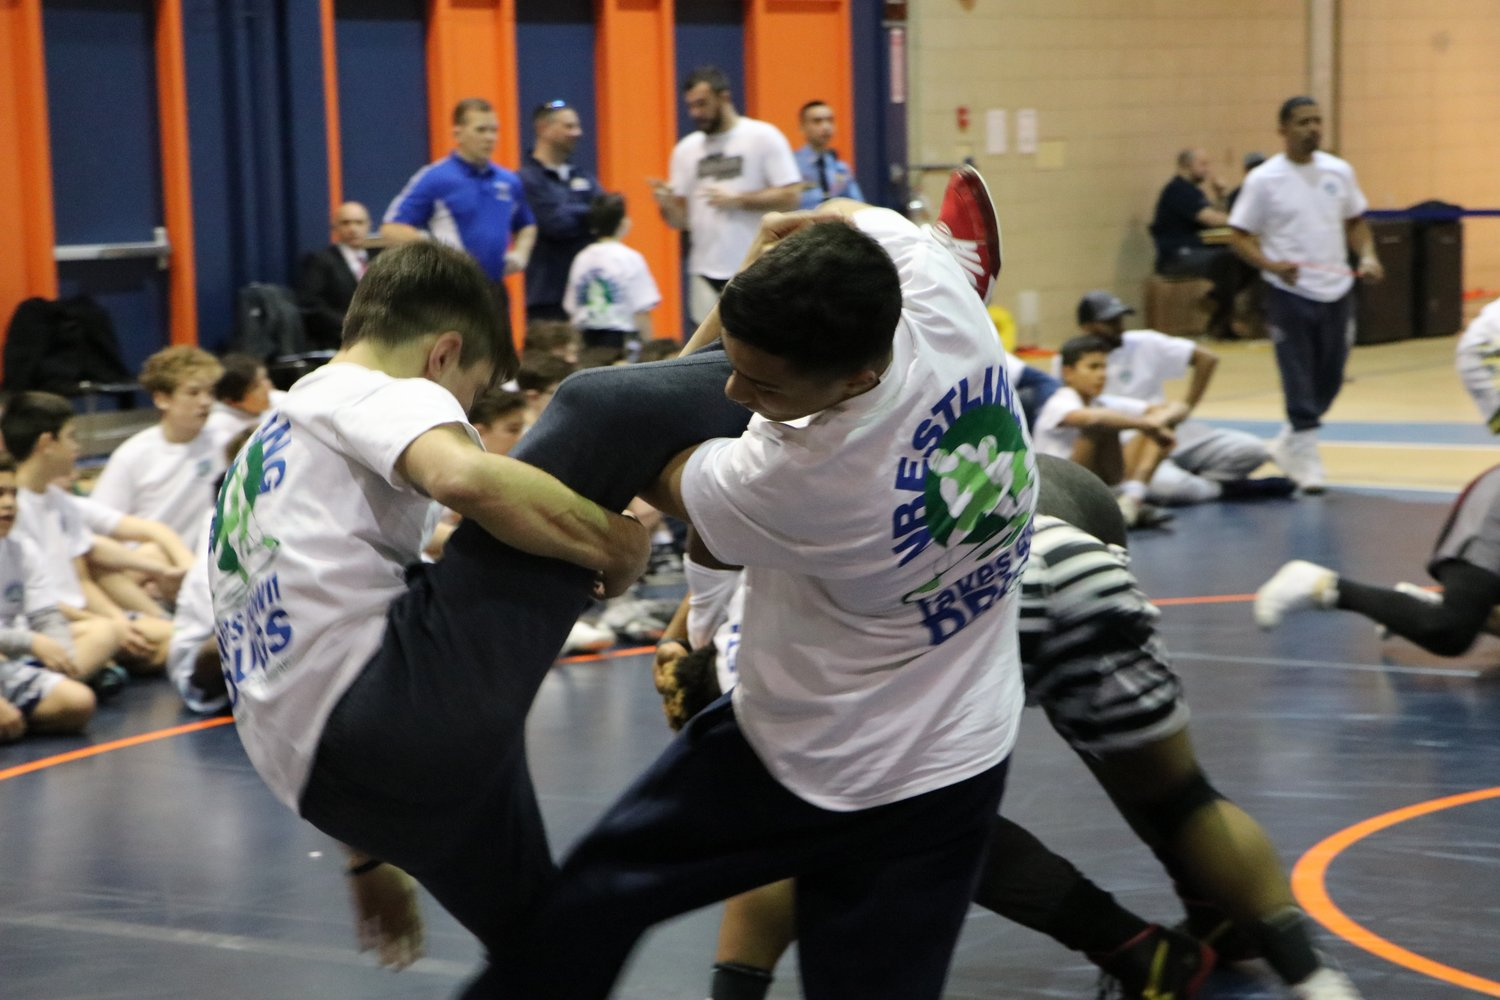 A teenage wrestler looked to sweep the leg of his opponent and bring him down to the mat for a pin.